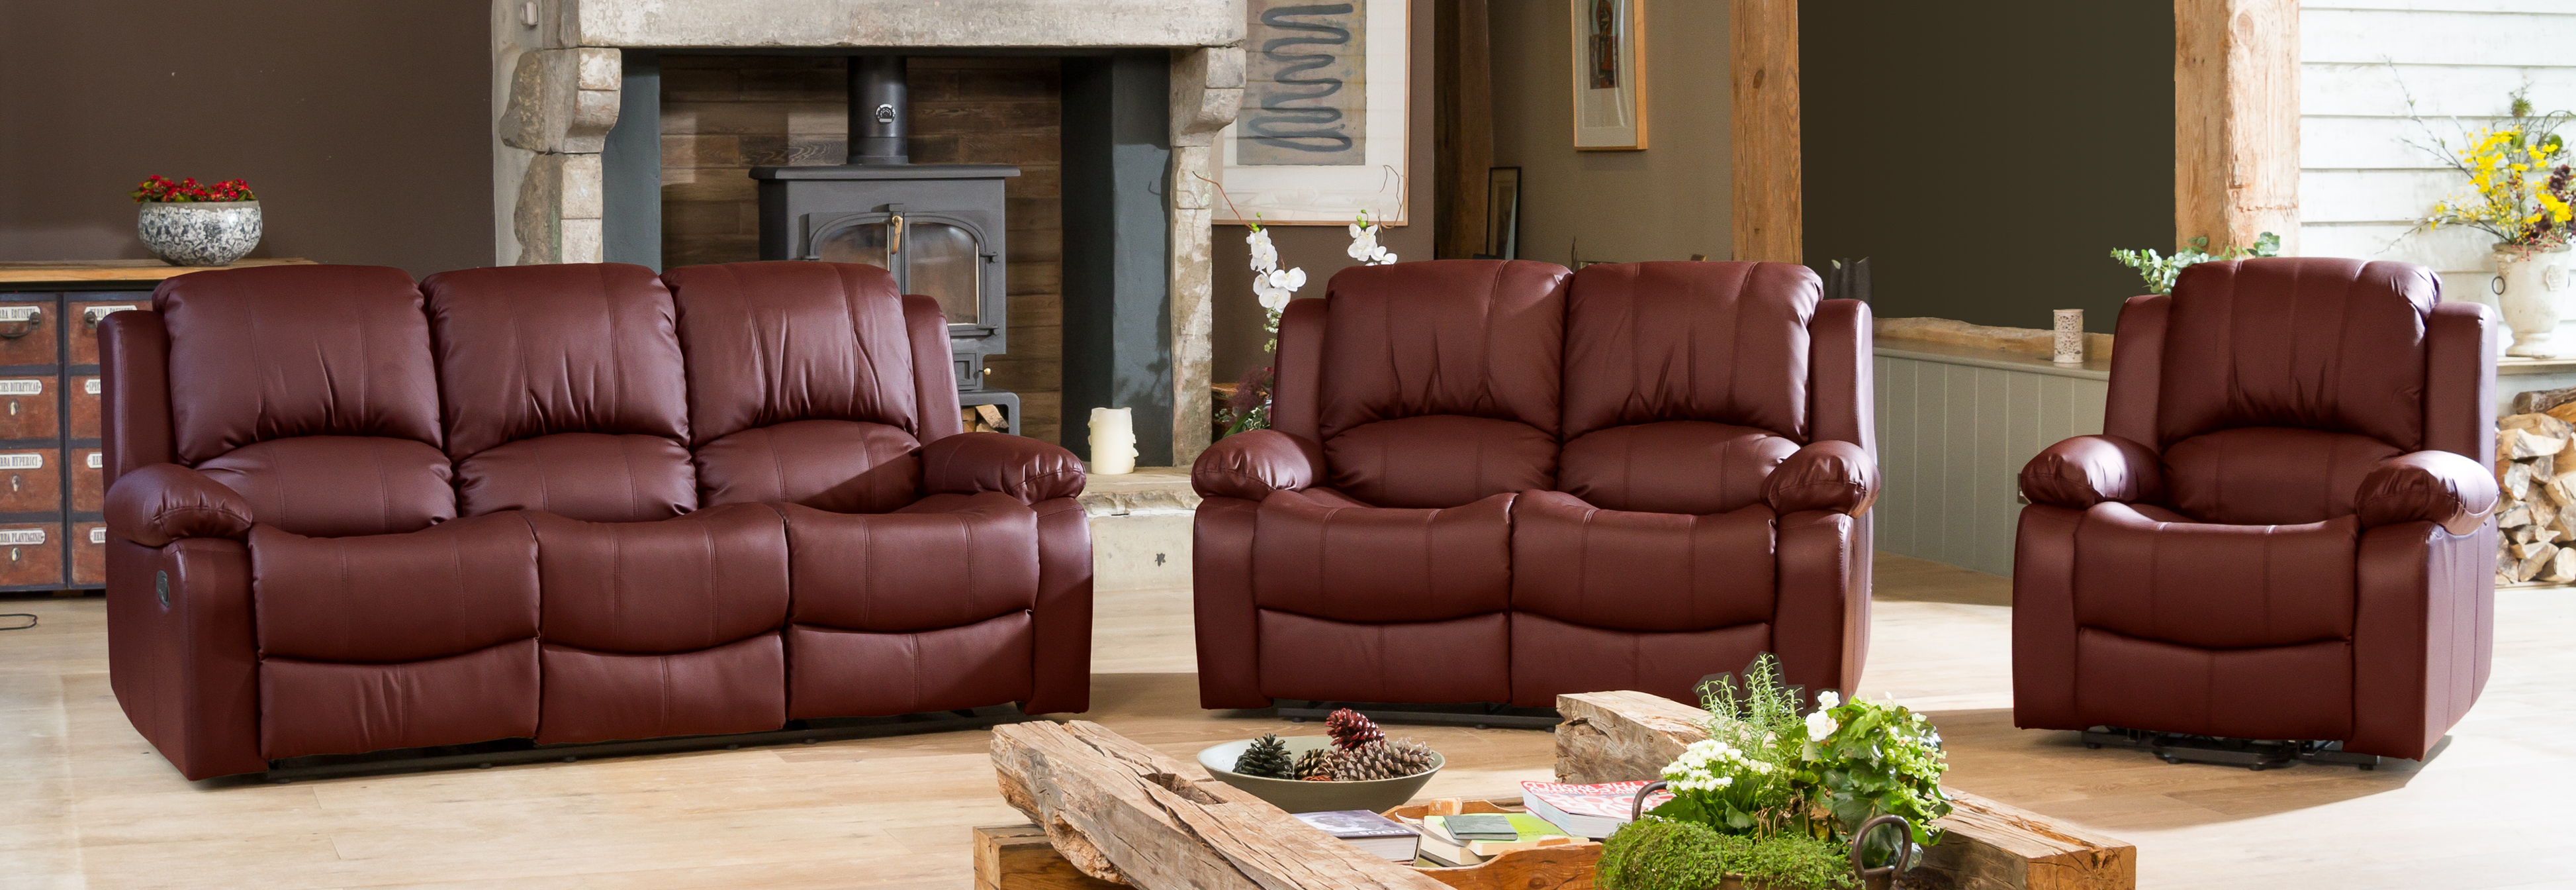 Burghley Reclining Suite burgundy